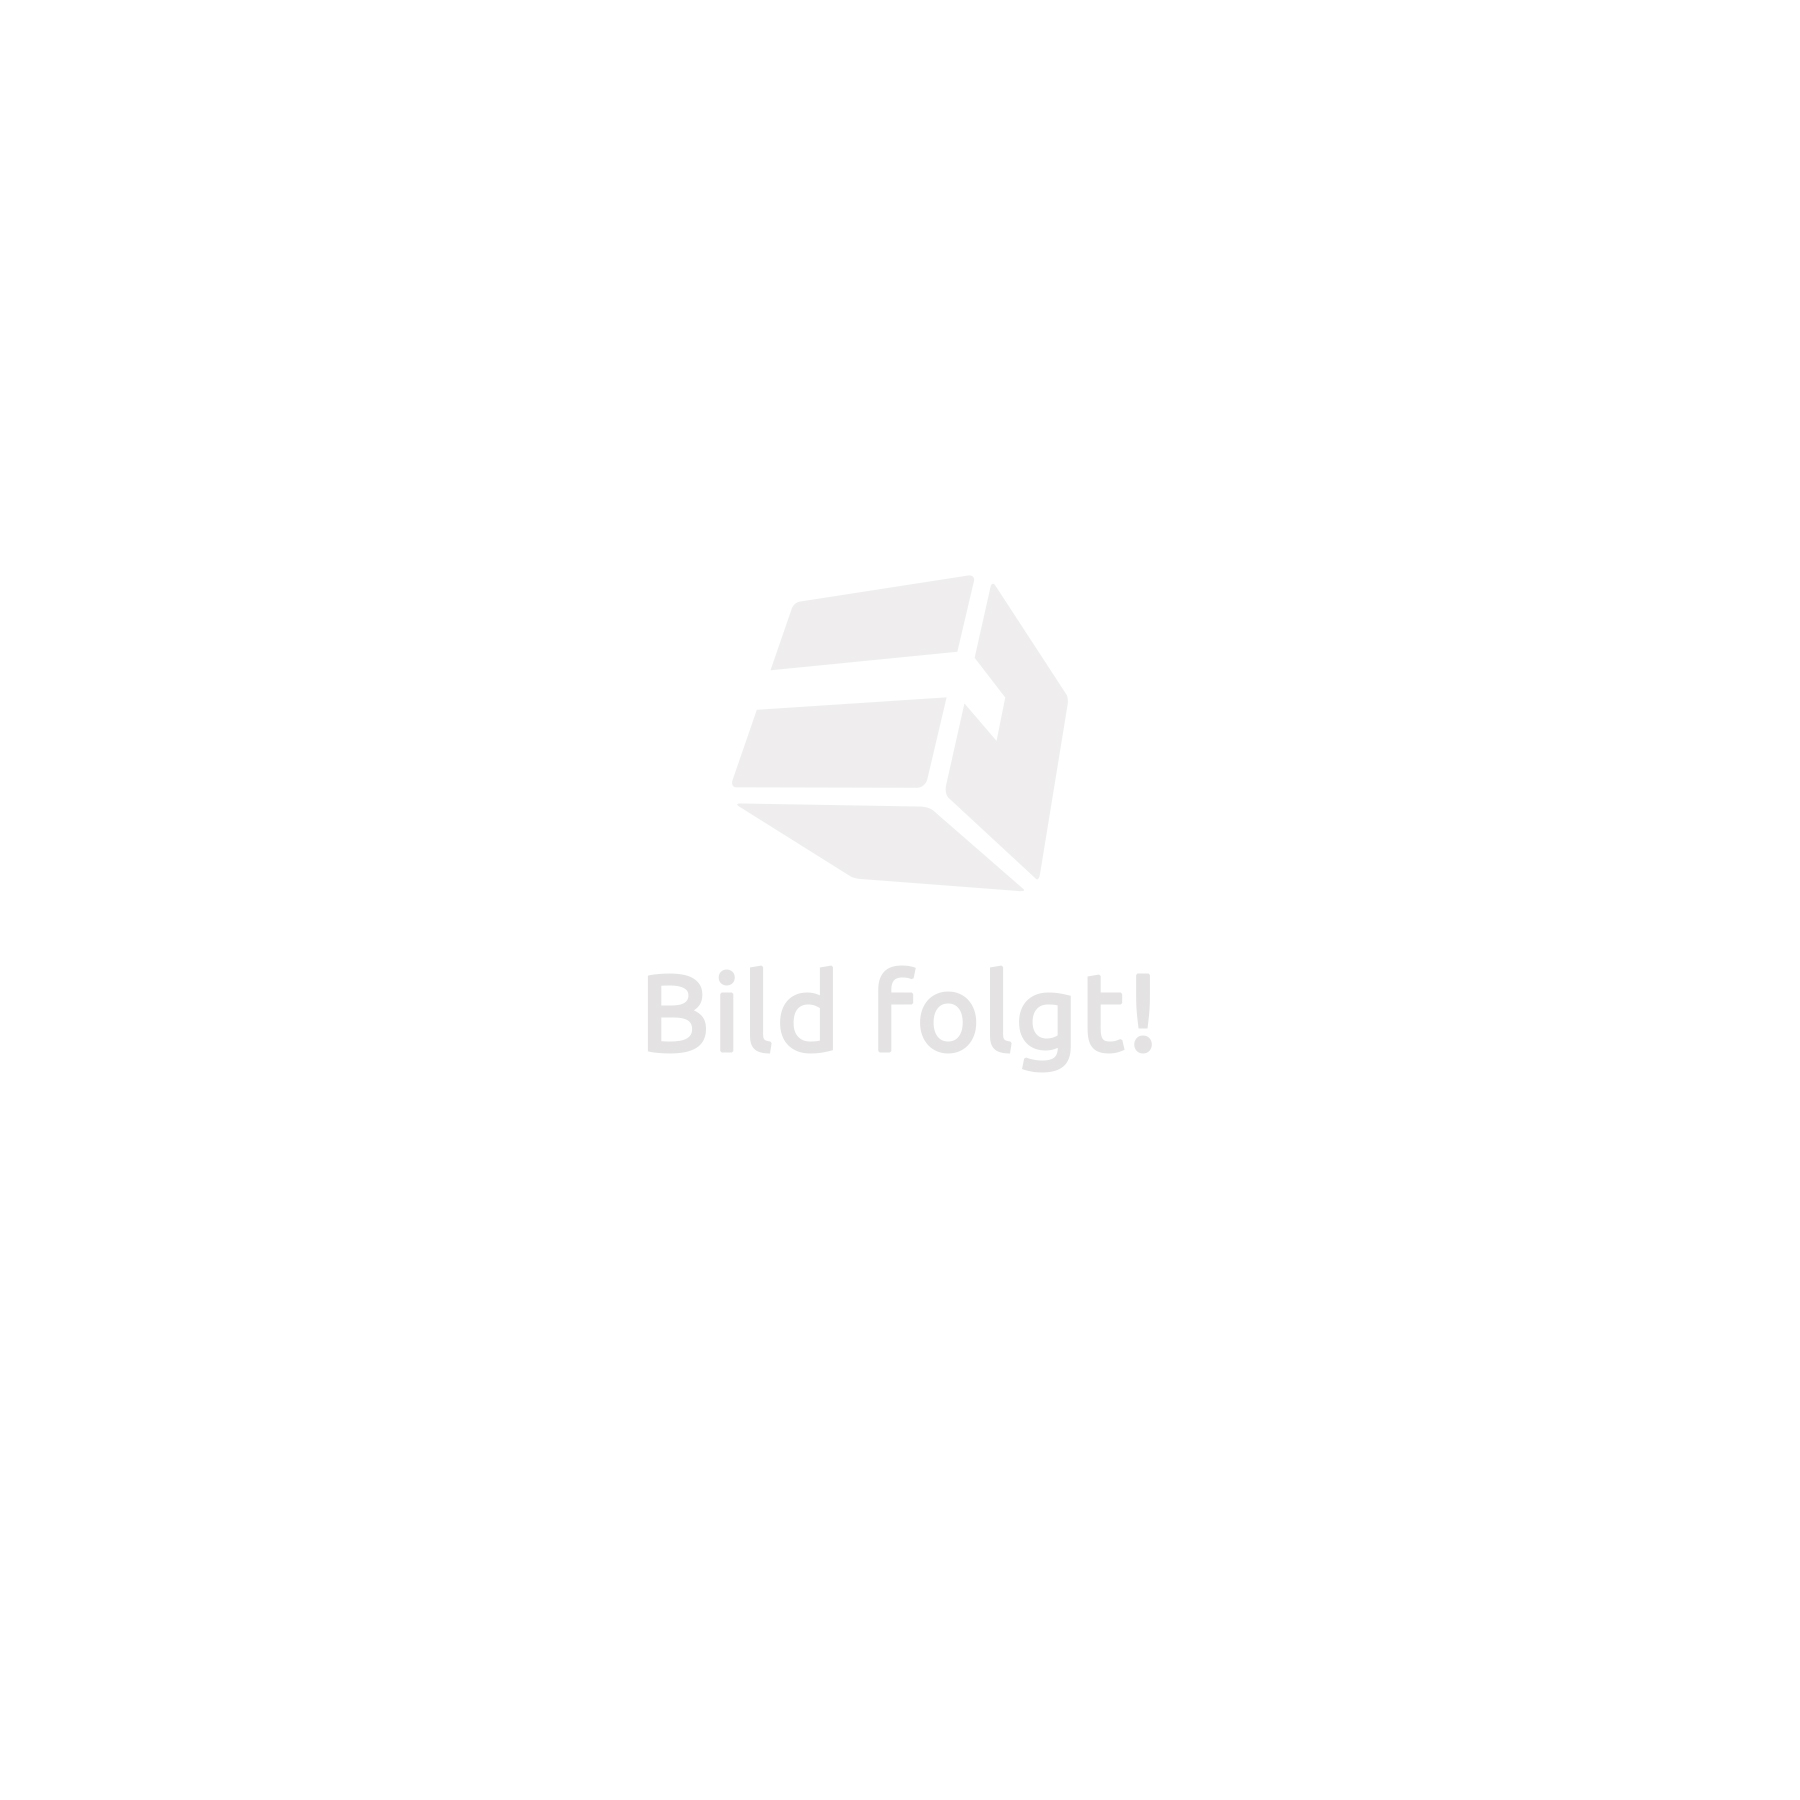 Table de bar, Table de Jardin, Aluminium - Hauteur réglable